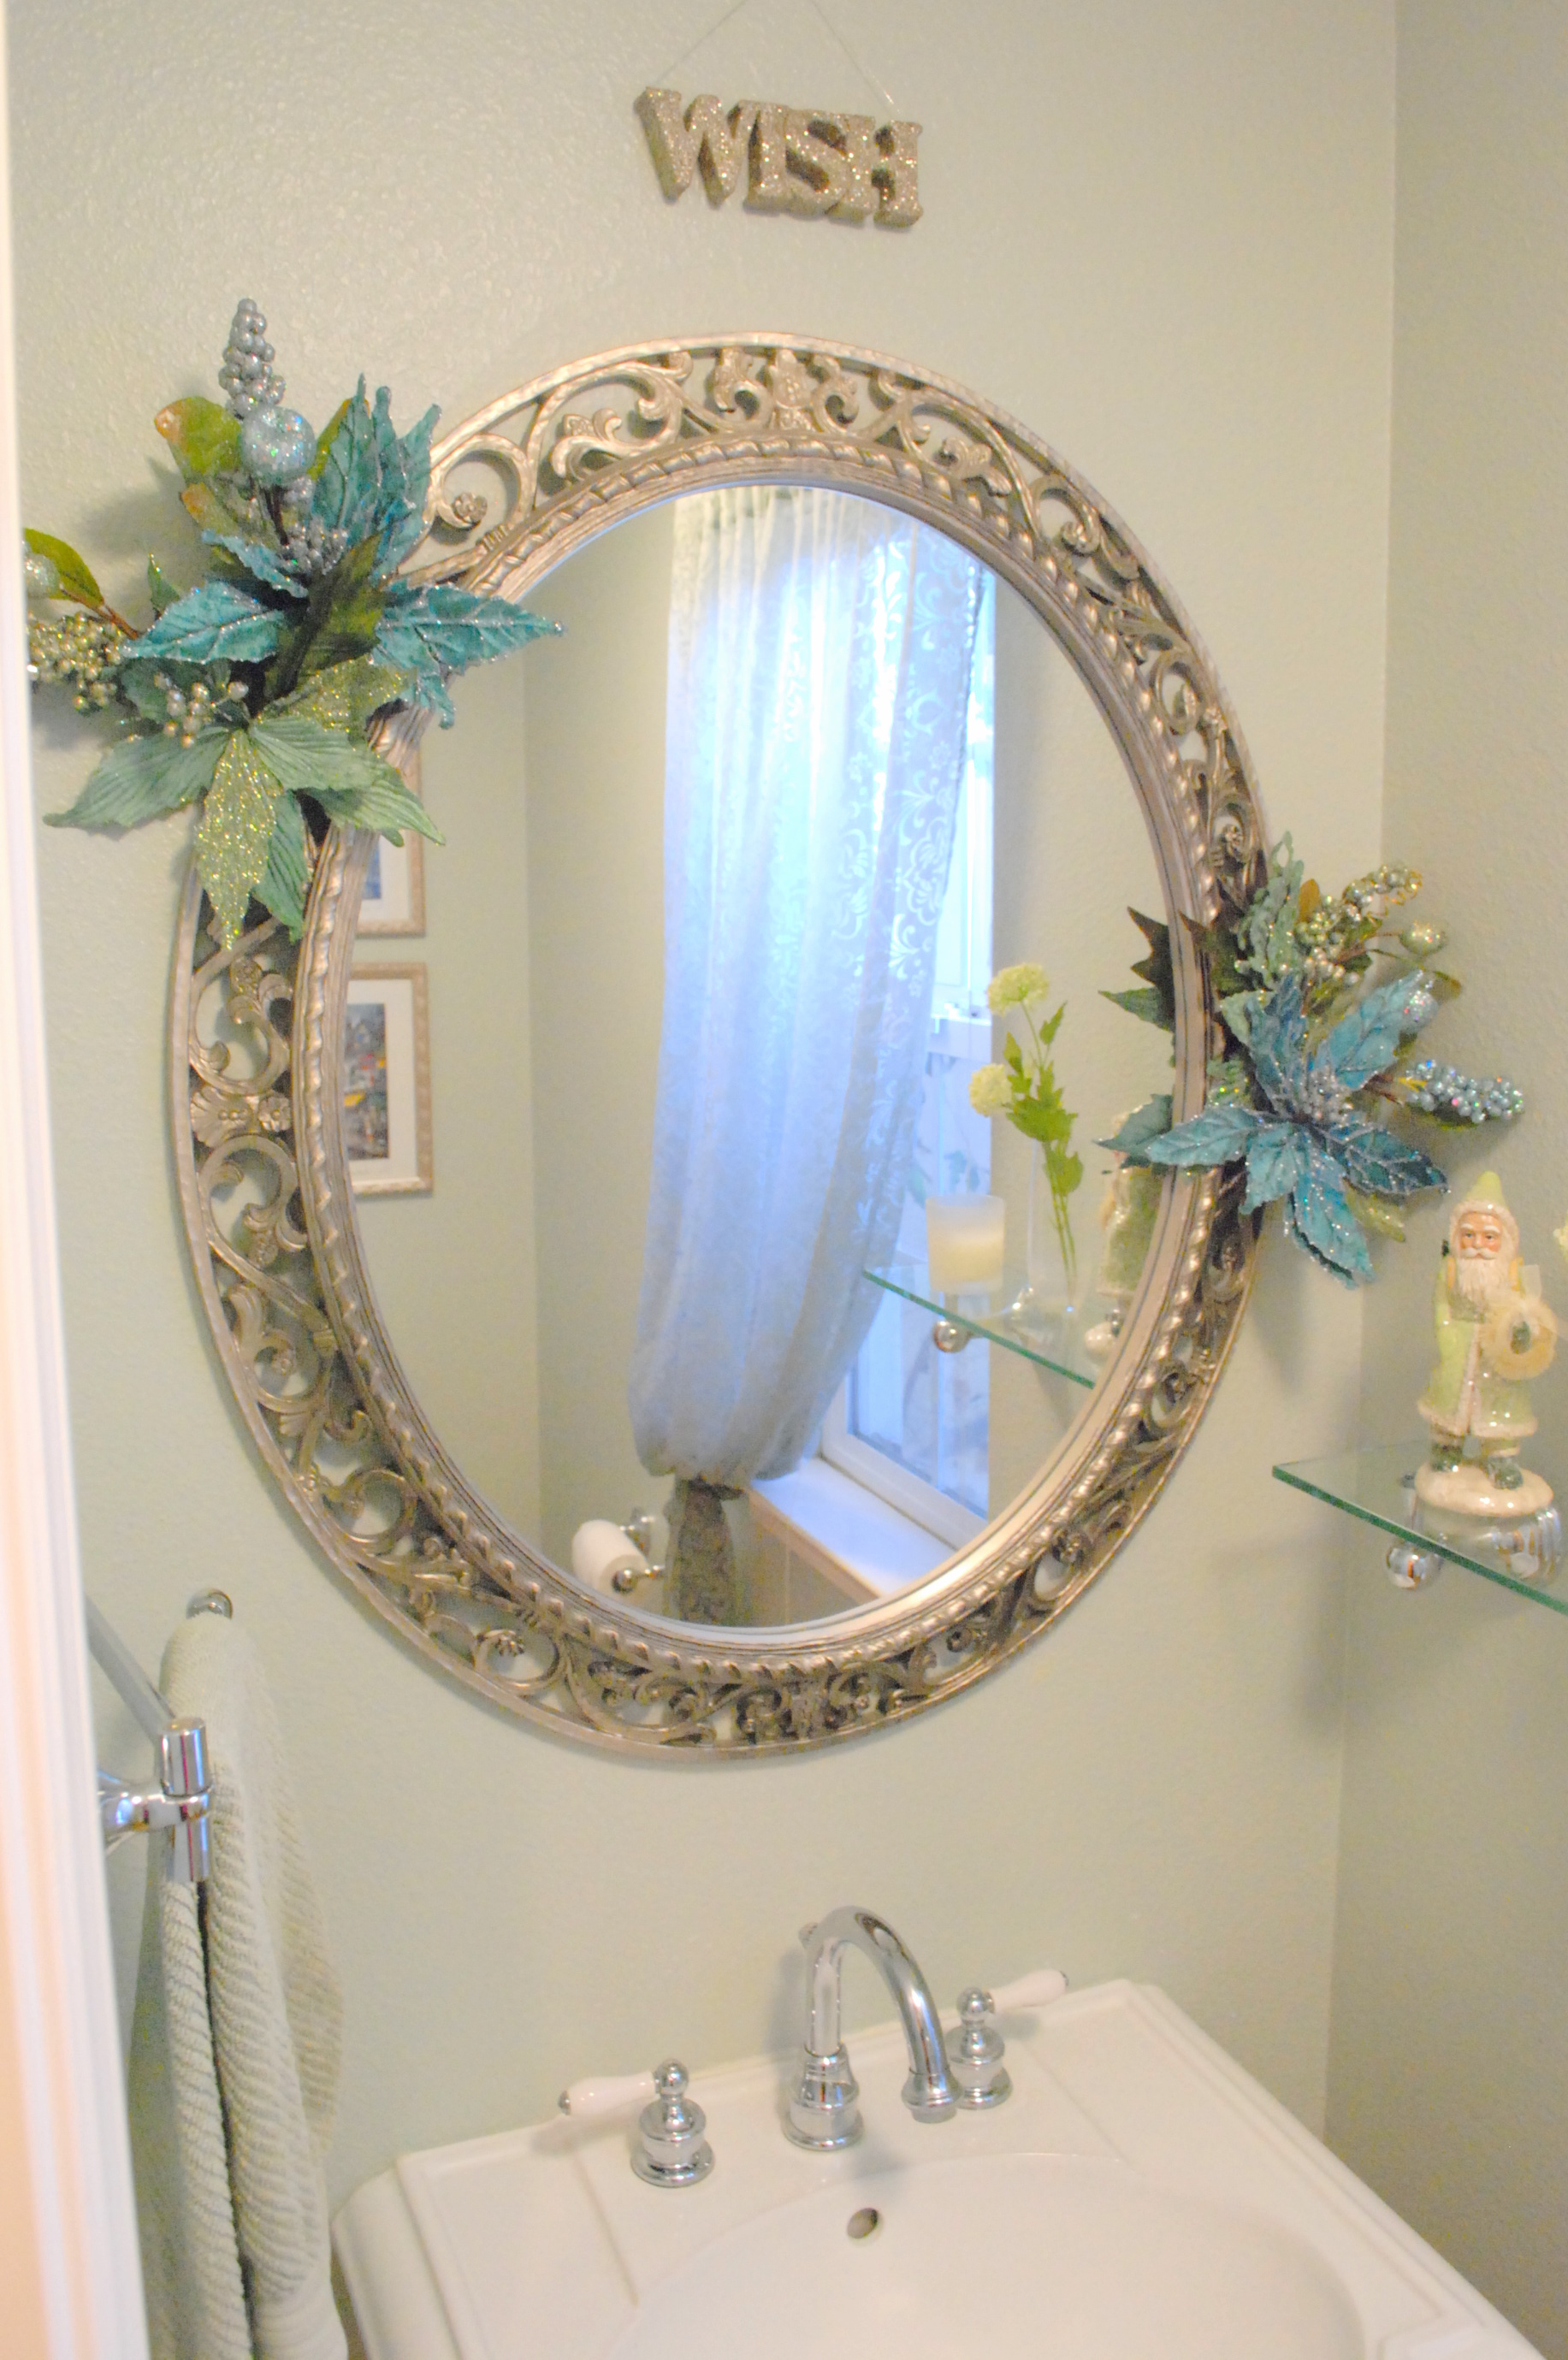 Mirror decorations ideas mirror decorations ideas amusing for Home decorating mirrors